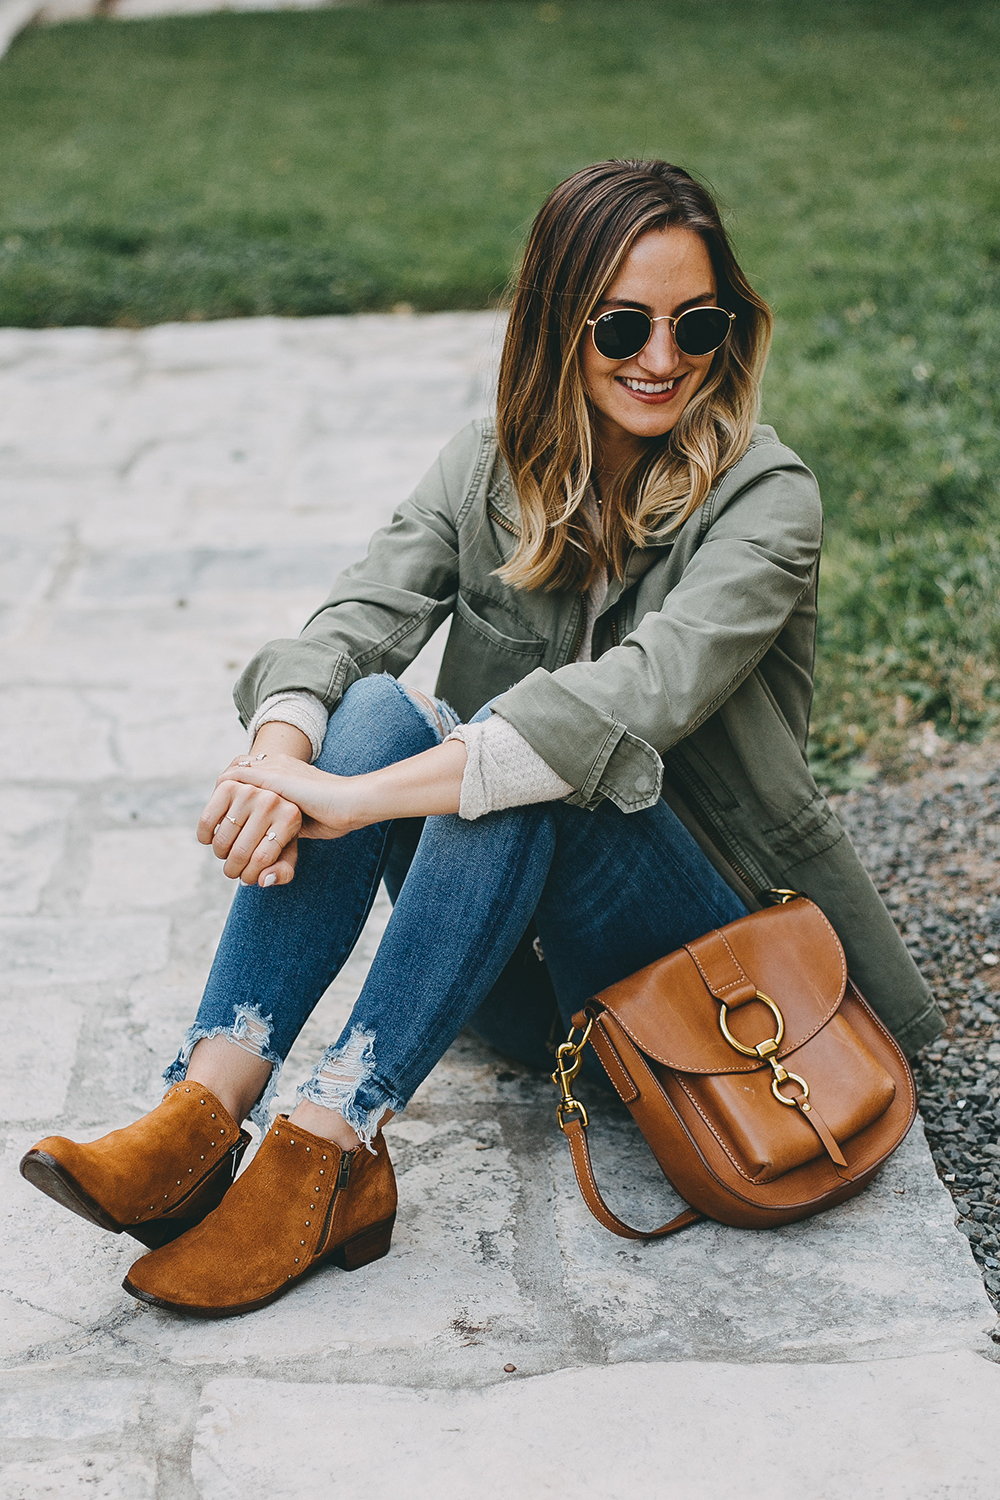 livvyland-blog-olivia-watson-austin-texas-fashion-blogger-minnatonka-moccasins-tan-suede-ankle-booties-4